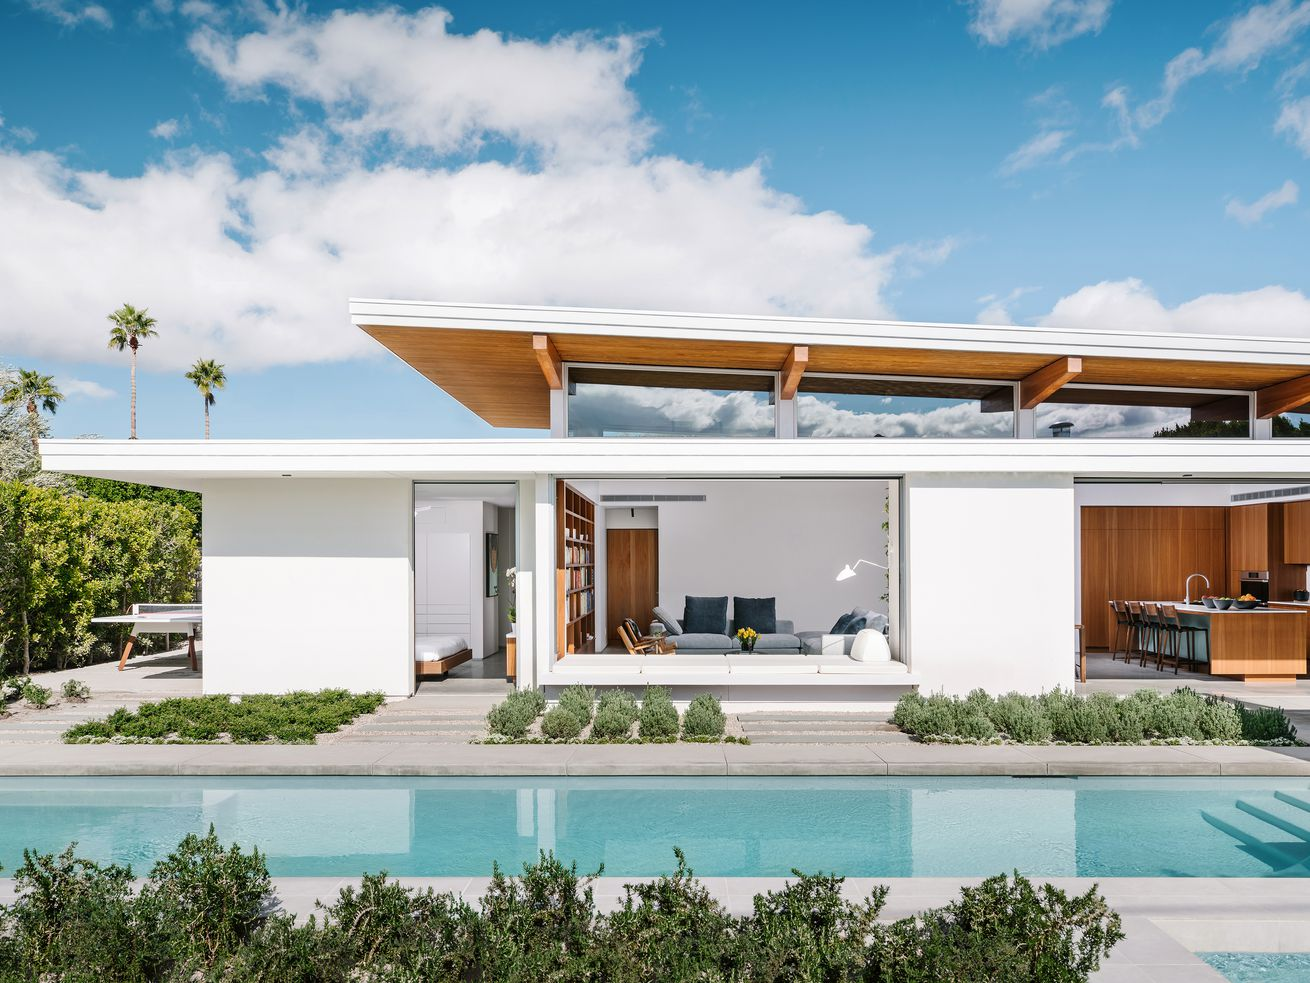 Modern Palm Springs prefab can be bought and replicated